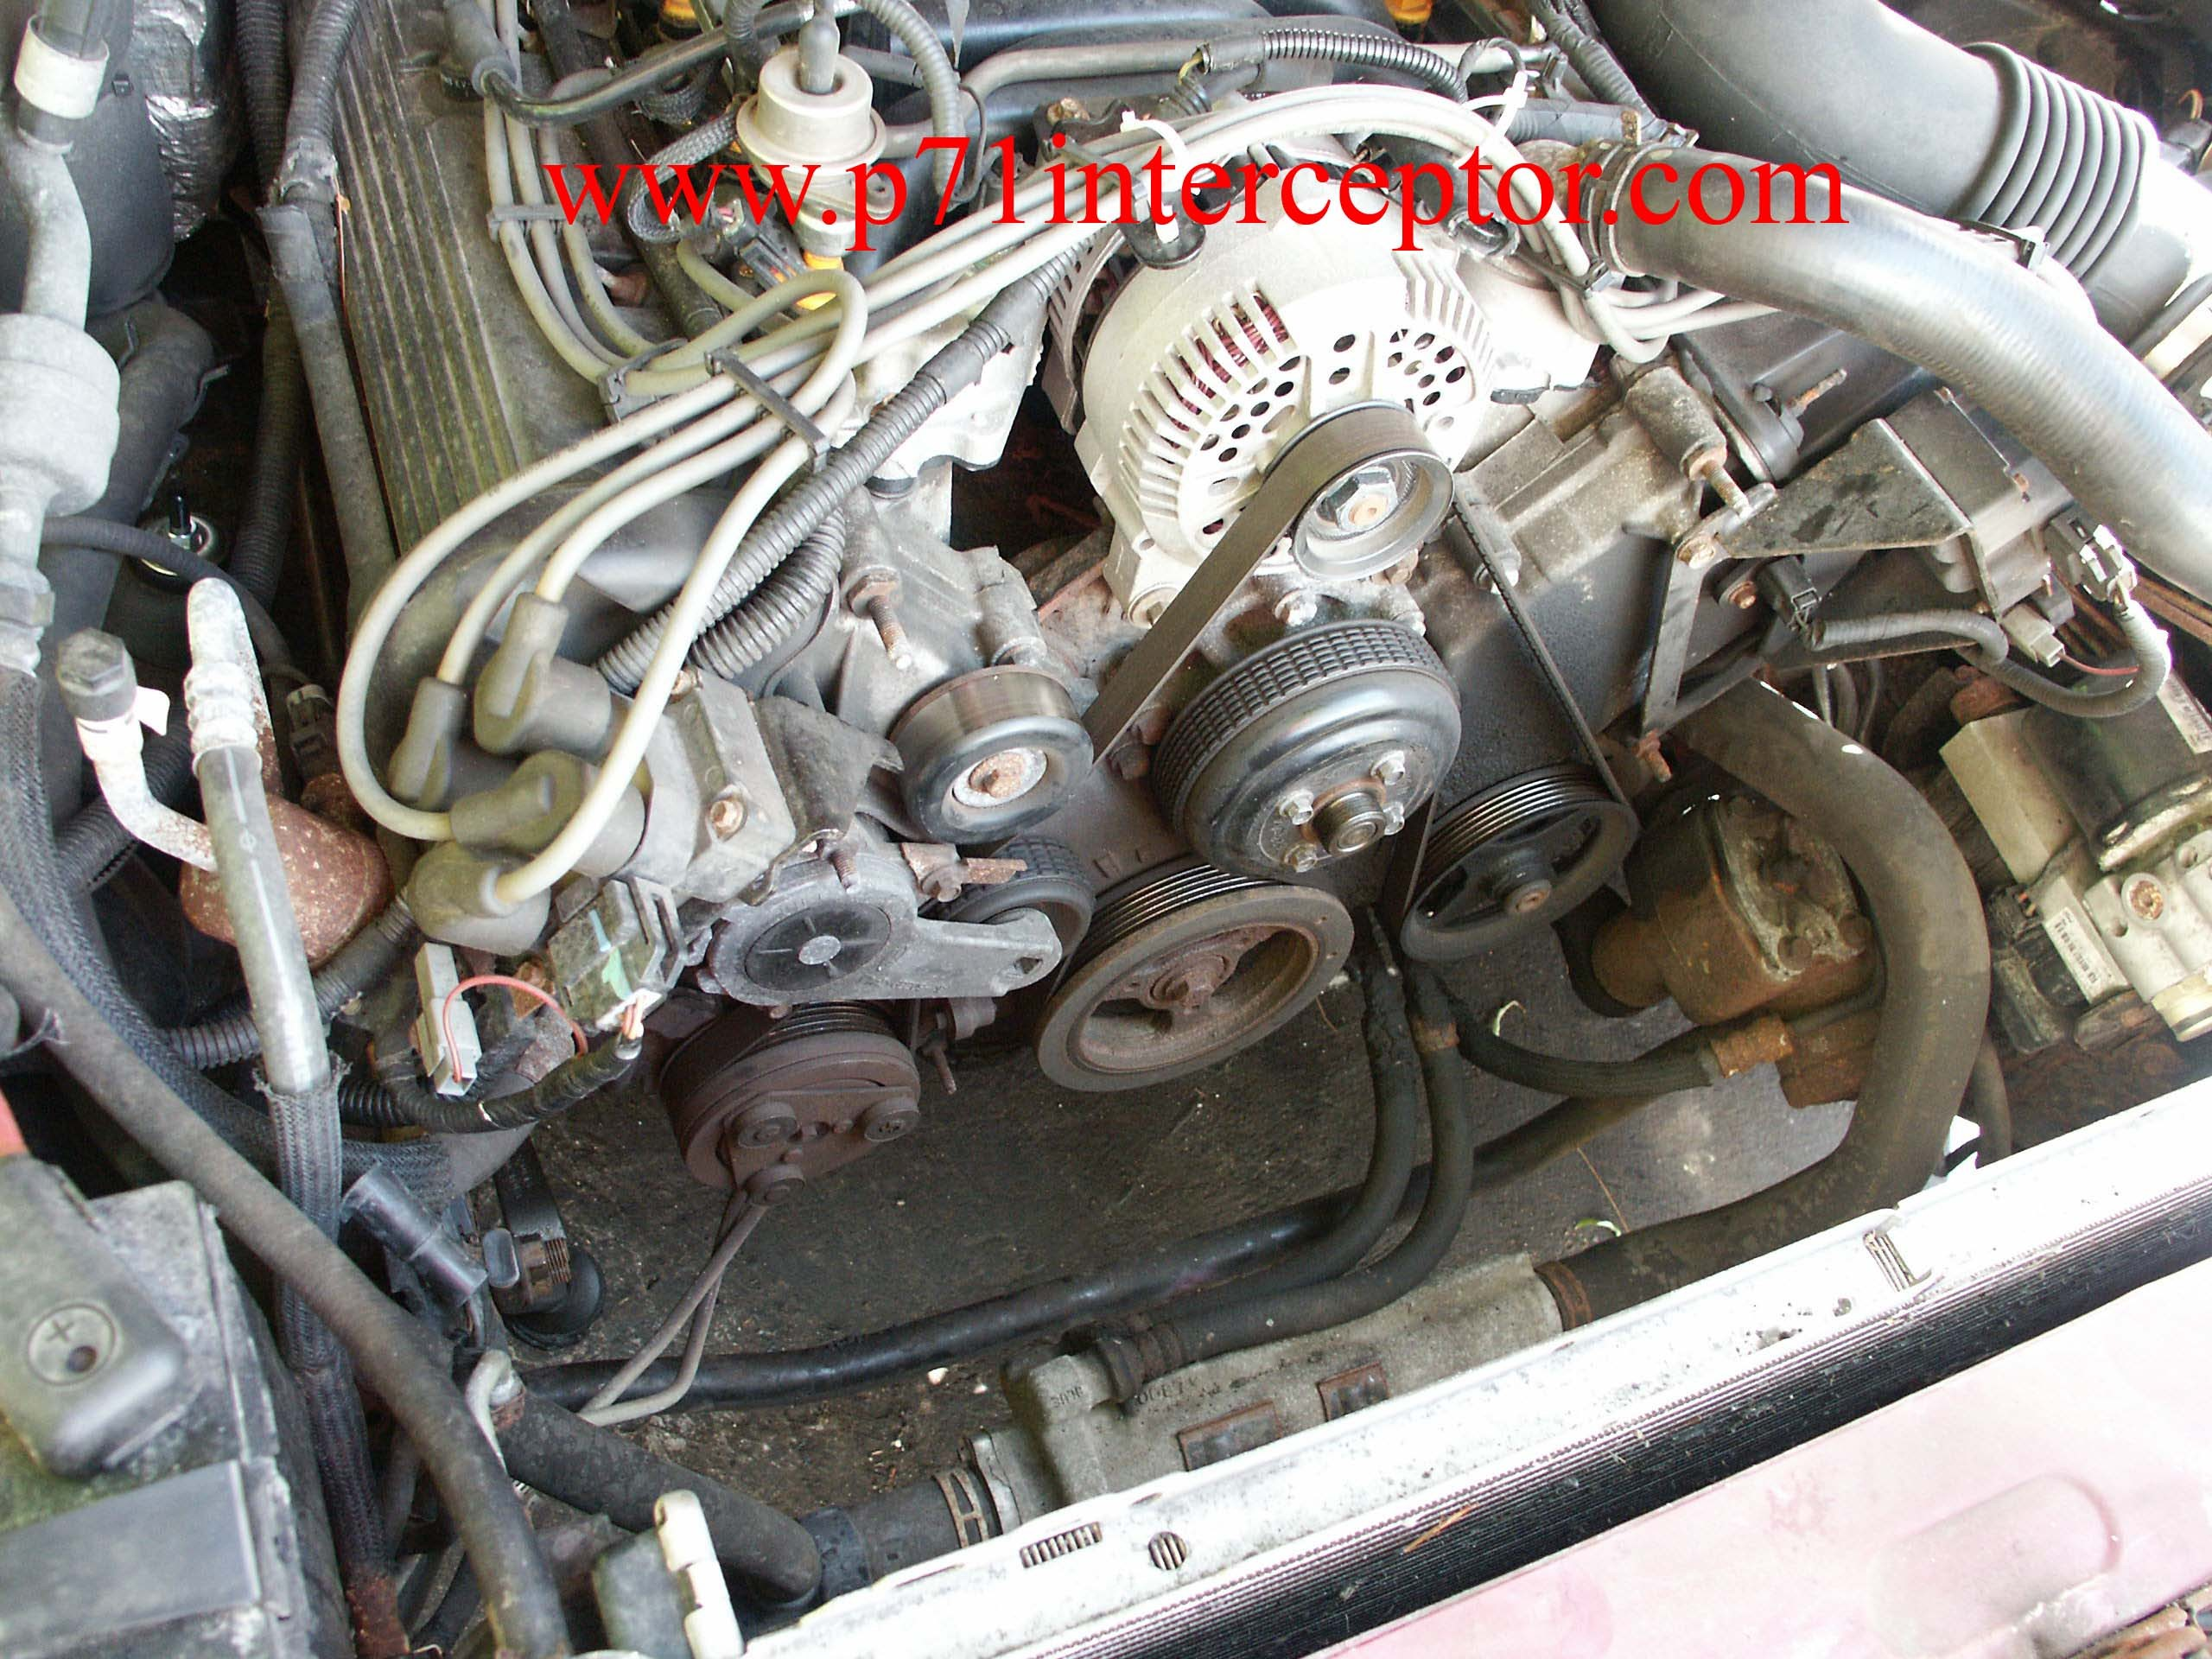 Grand Marquis Engine Diagram ford Crown Victoria Power Steering Pump Replacement Of Grand Marquis Engine Diagram